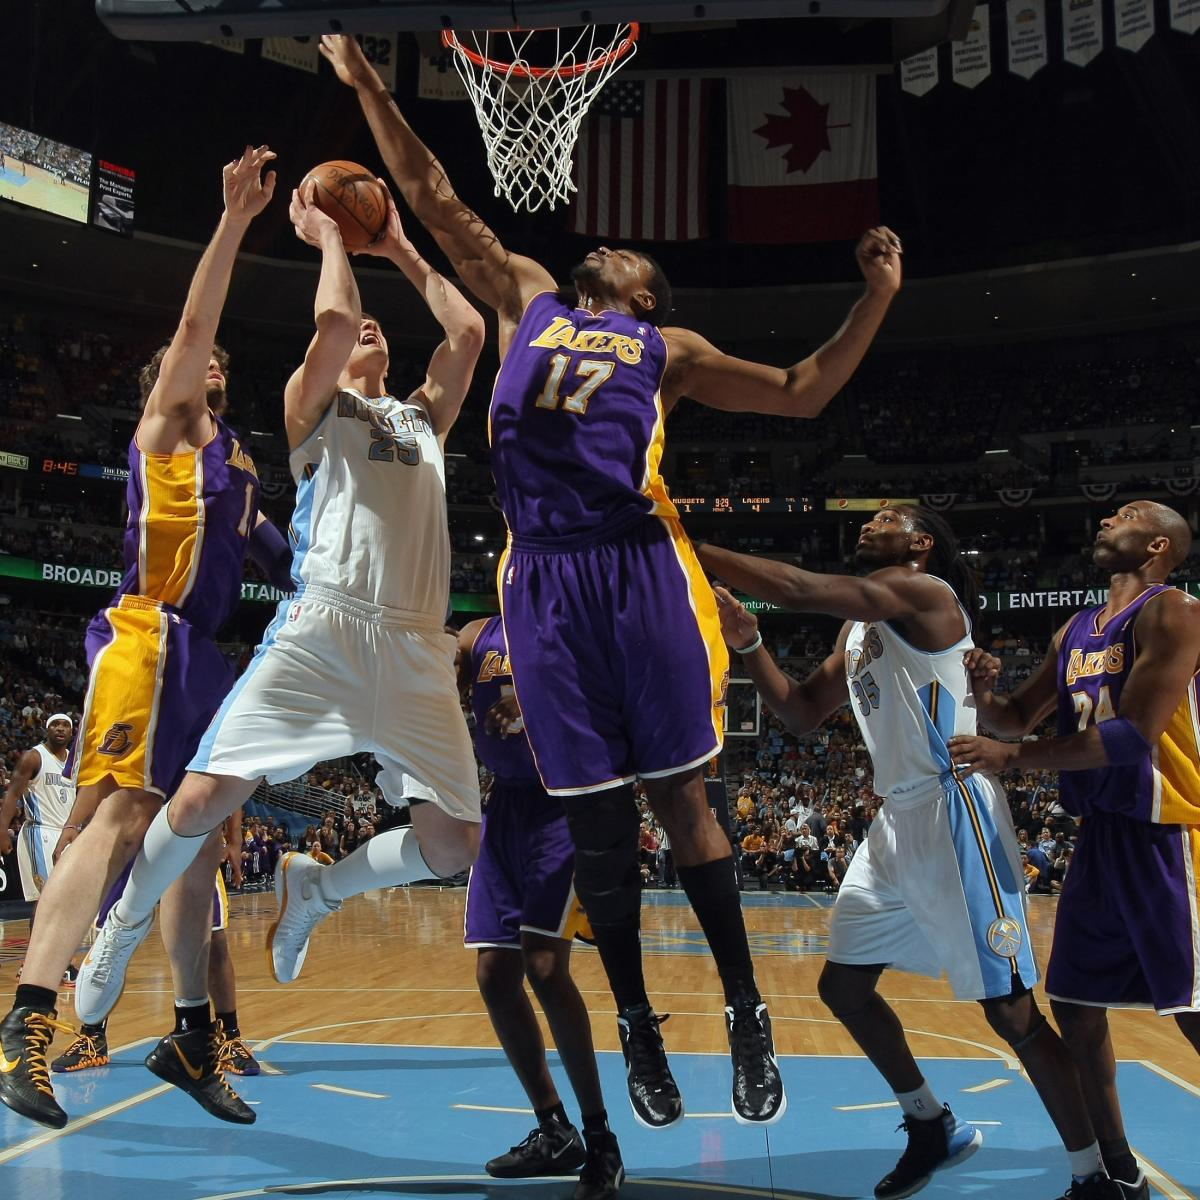 Lakers Vs. Nuggets: Instant Reaction And Analysis Of Game